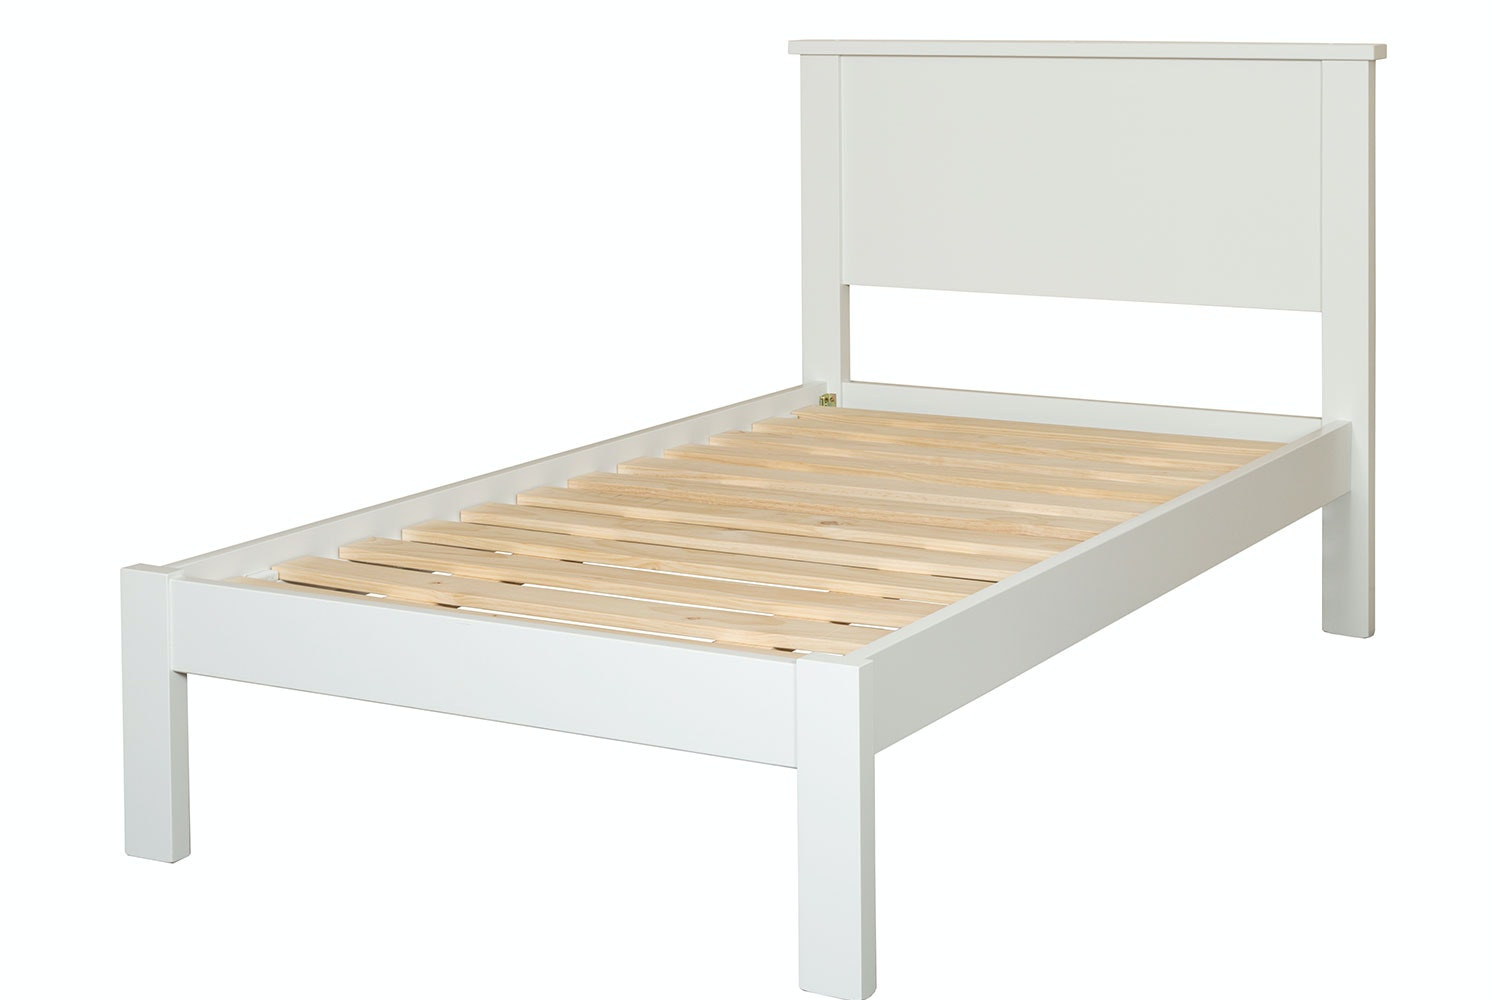 Granville Queen Panelled Bed Frame by Coastwood Furniture